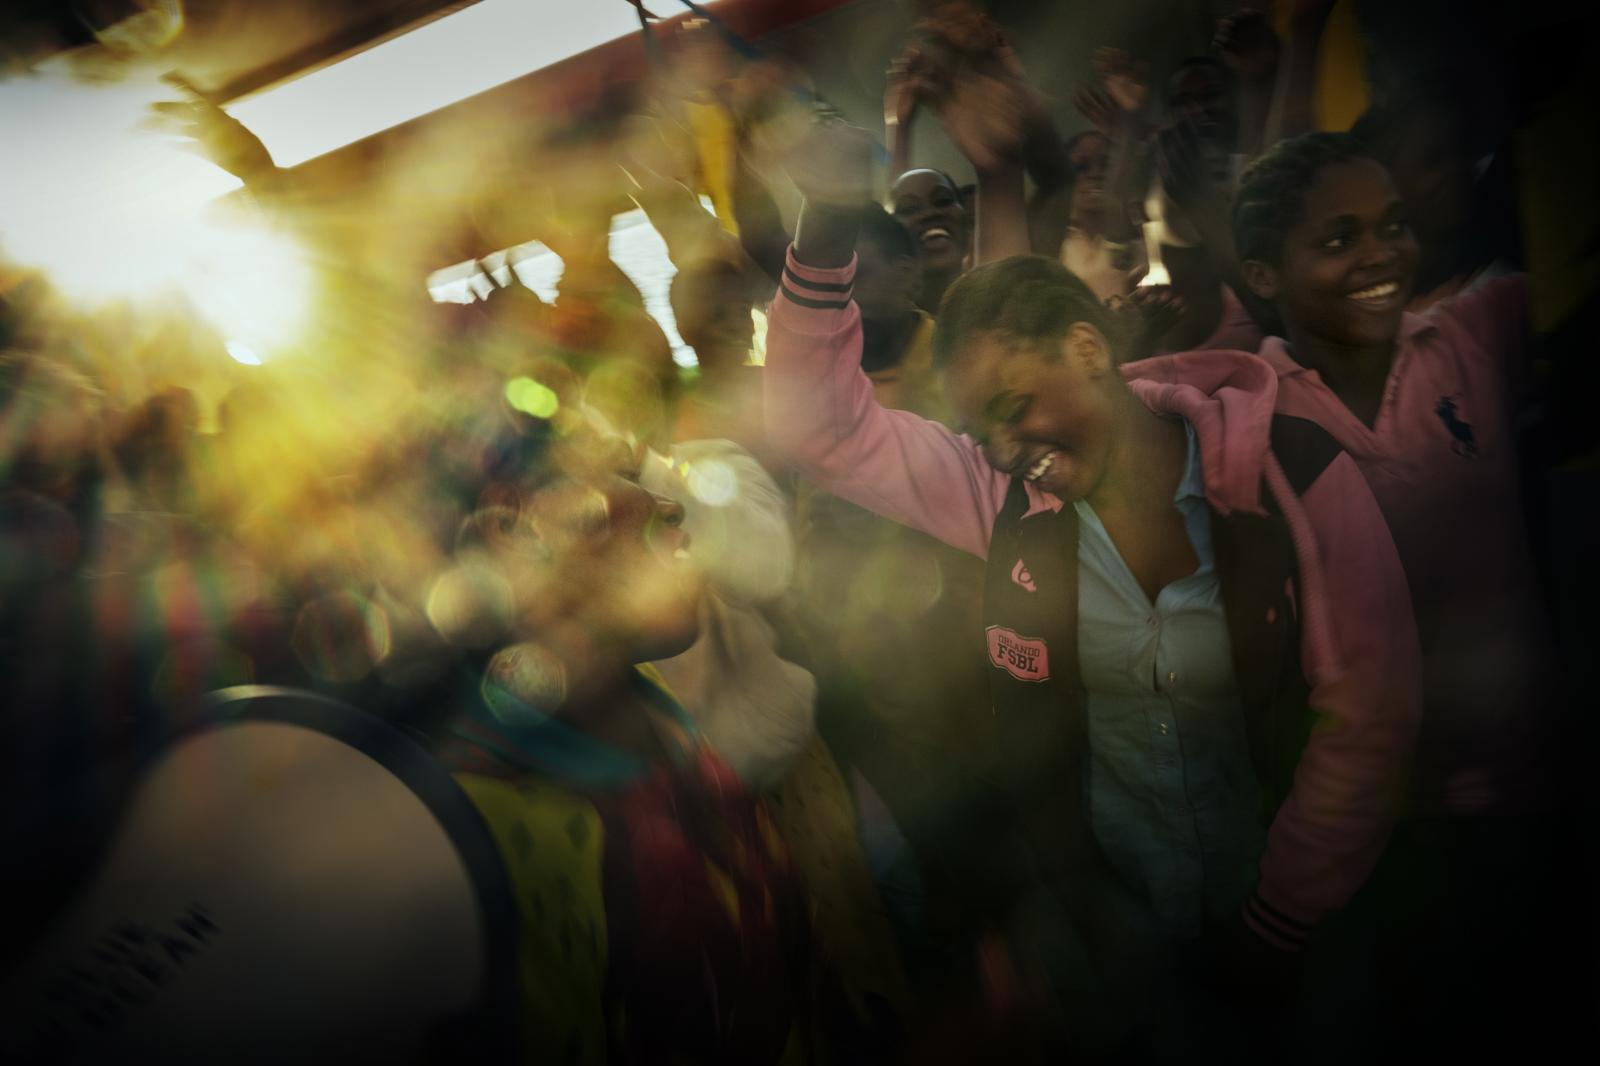 After two days on board the Doctors Without Borders ship Bourbon Argos, some refugees and migrants dance in celebration of their arrival to Calabria. Once on land, they will be transferred to detention centres on European soil.